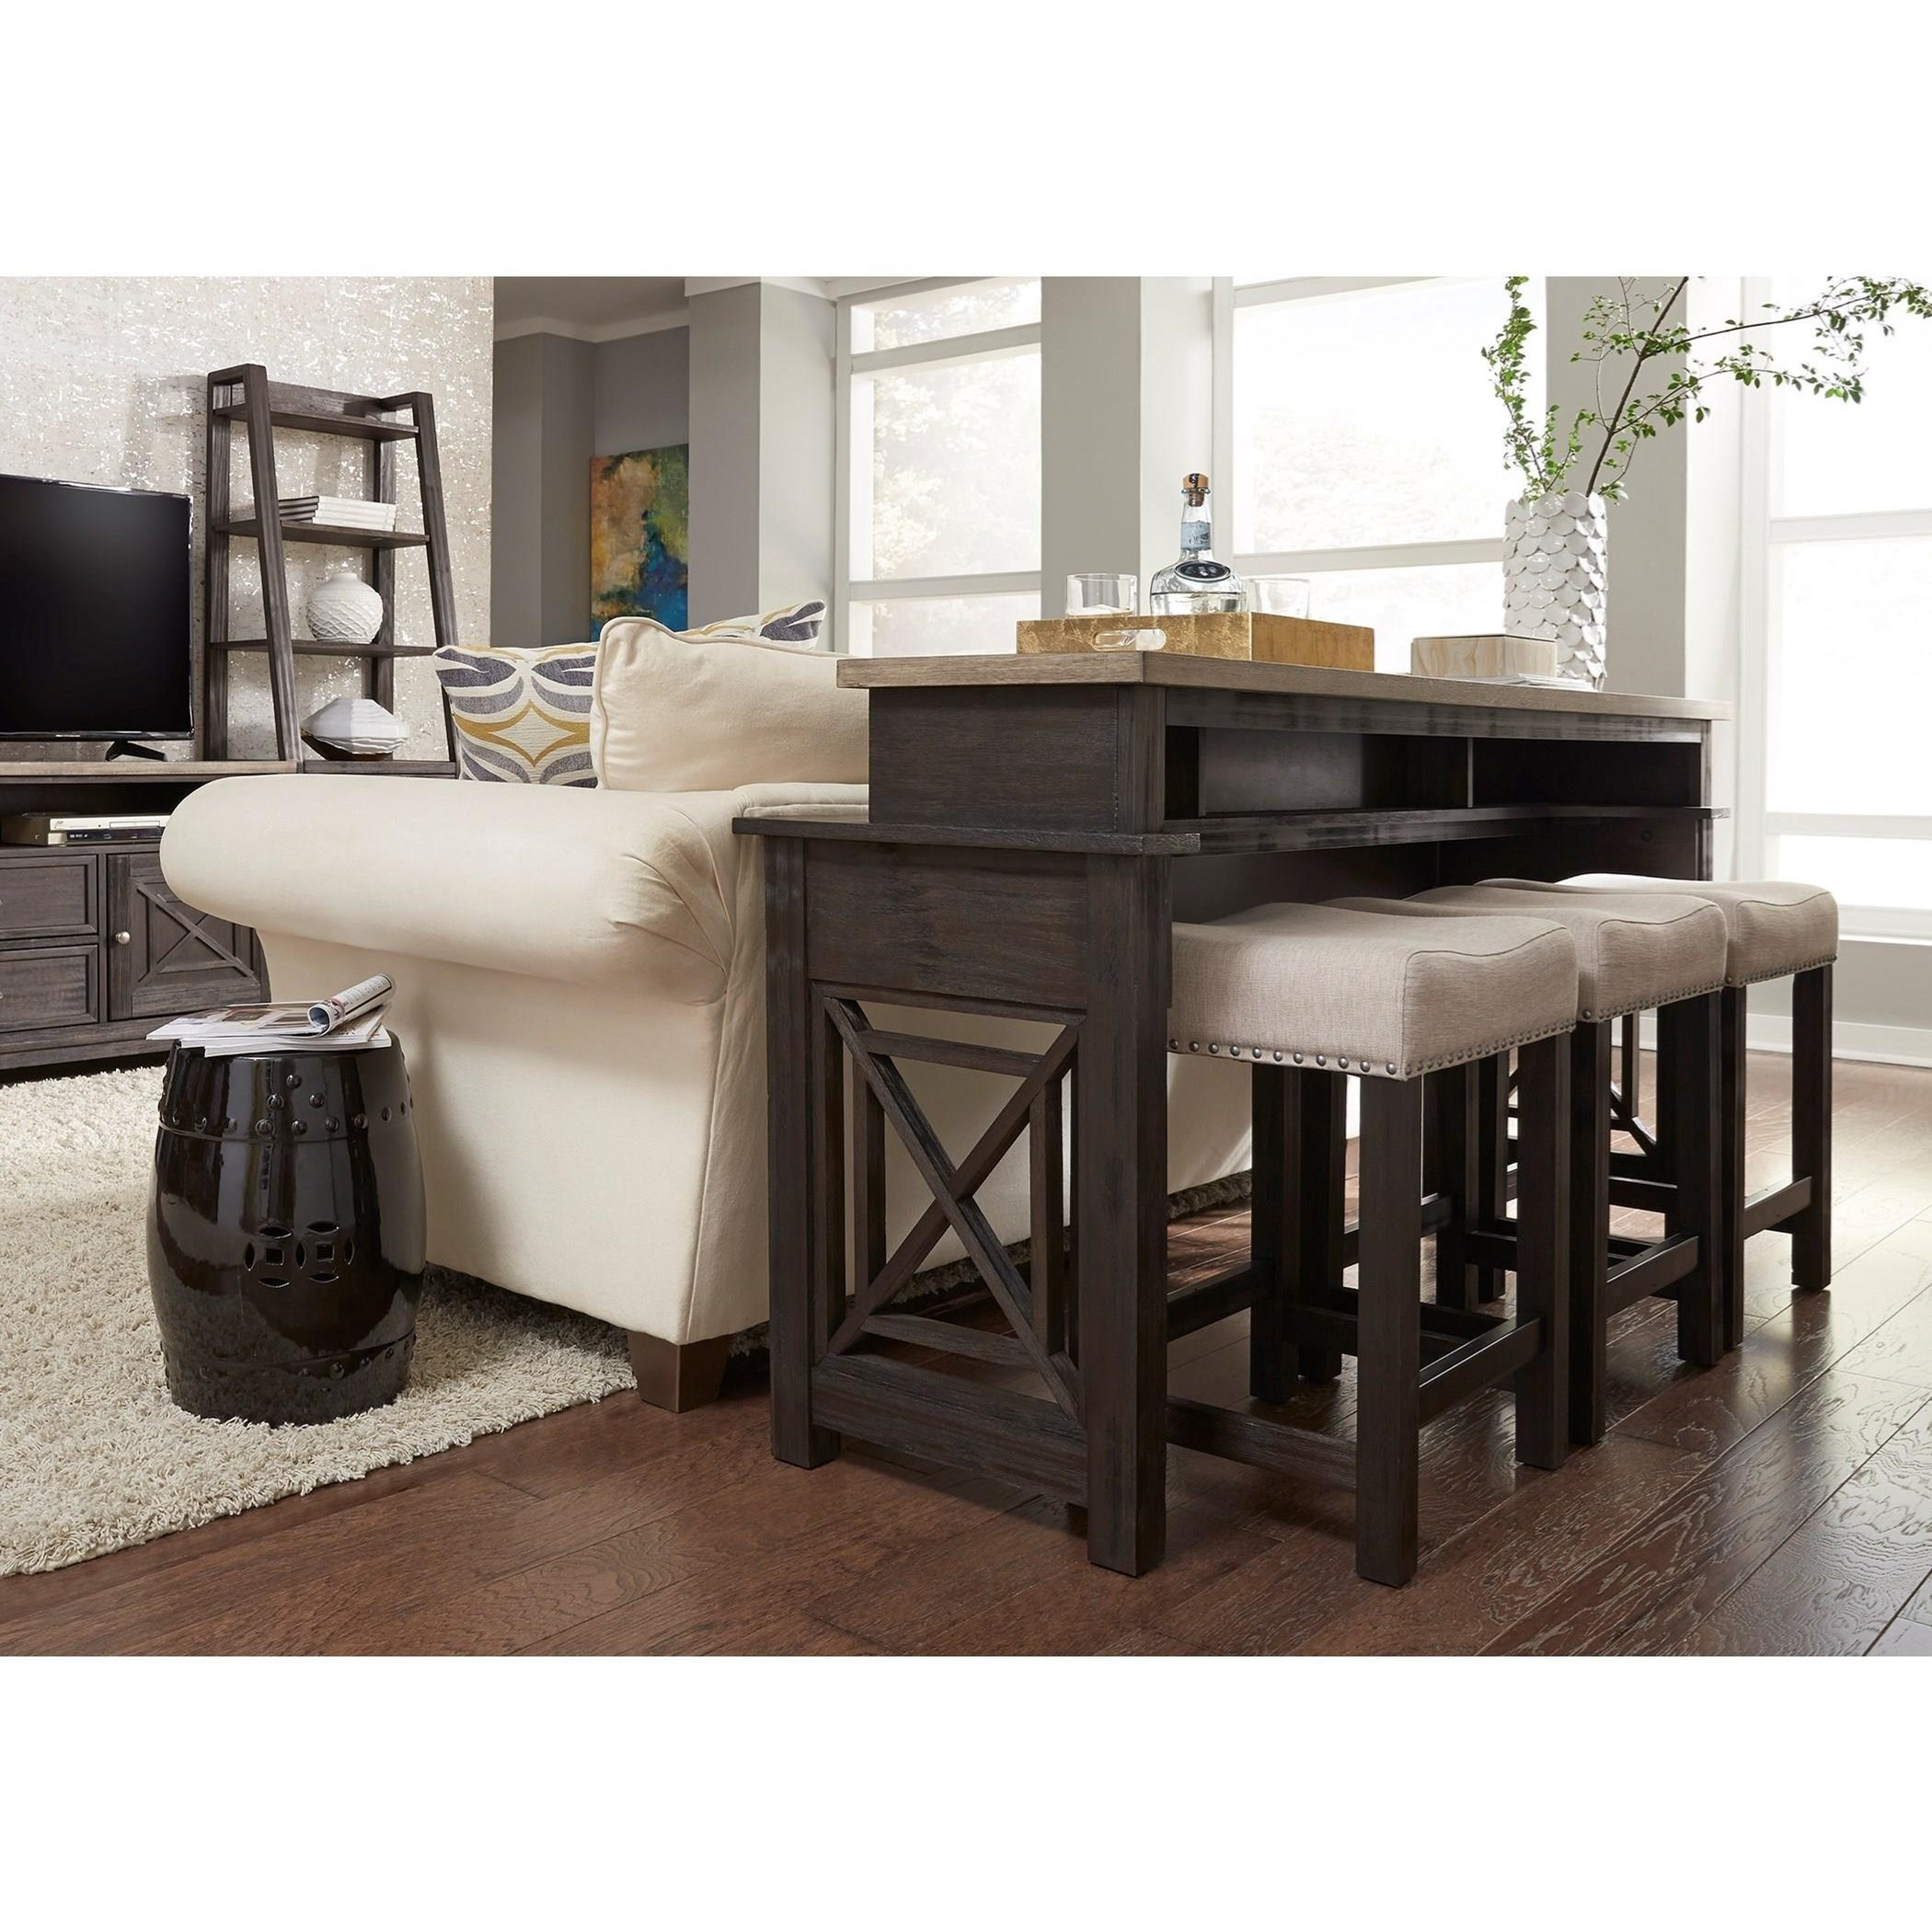 Heatherbrook 4 Piece Set  by Liberty Furniture at Johnny Janosik